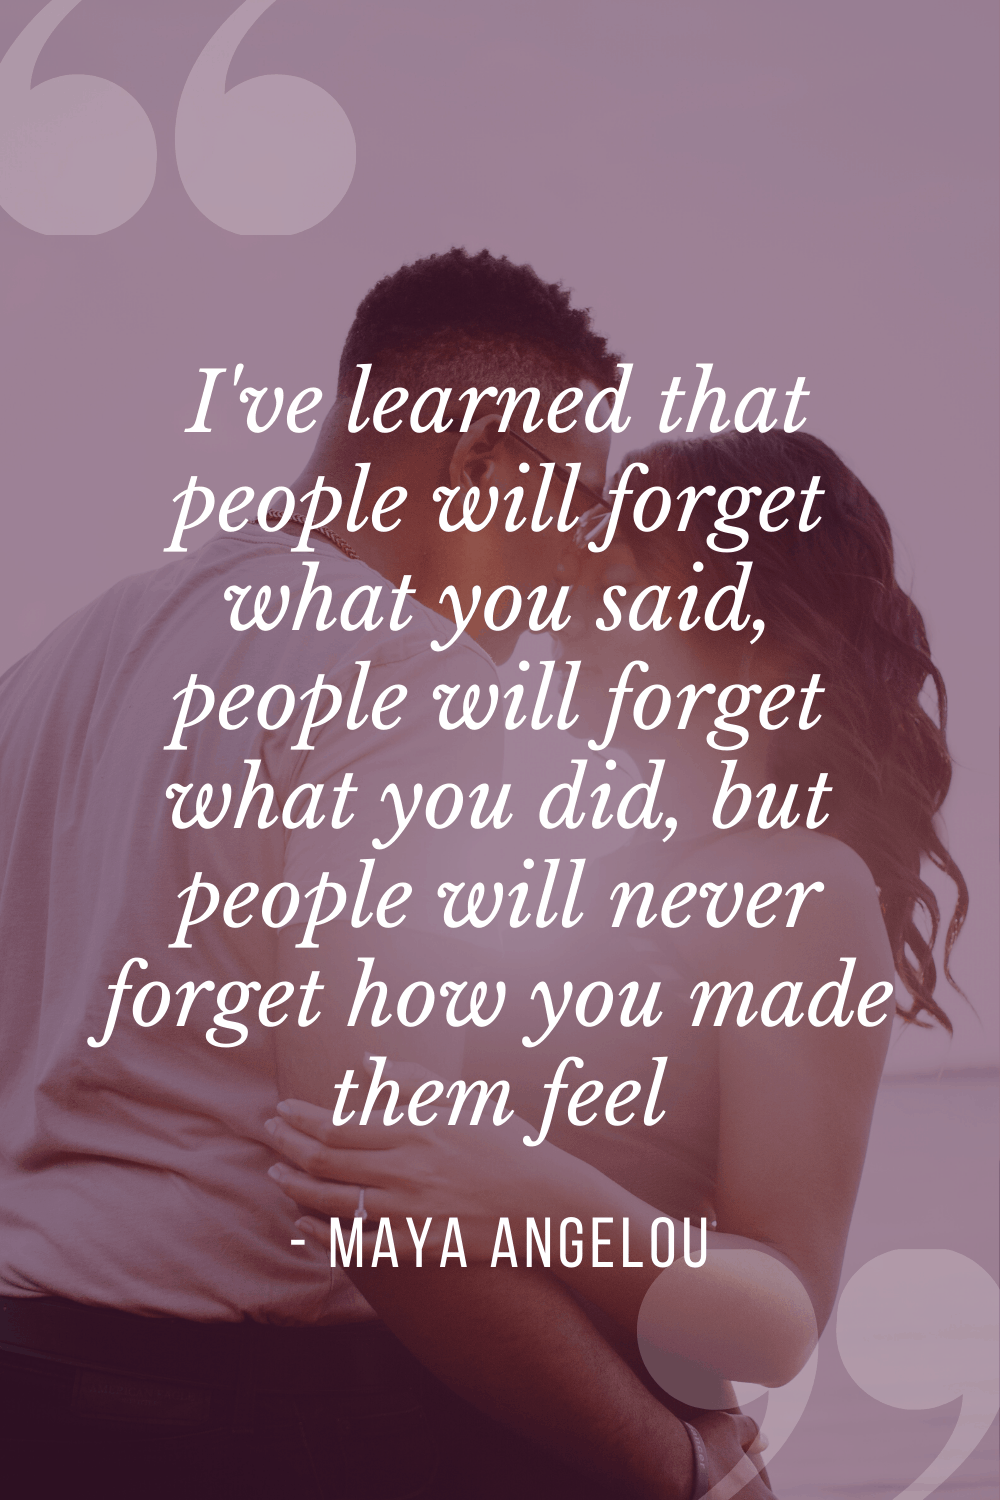 I've learned that people will forget what you said, people will forget what you did, but people will never forget how you made them feel, Maya Angelou